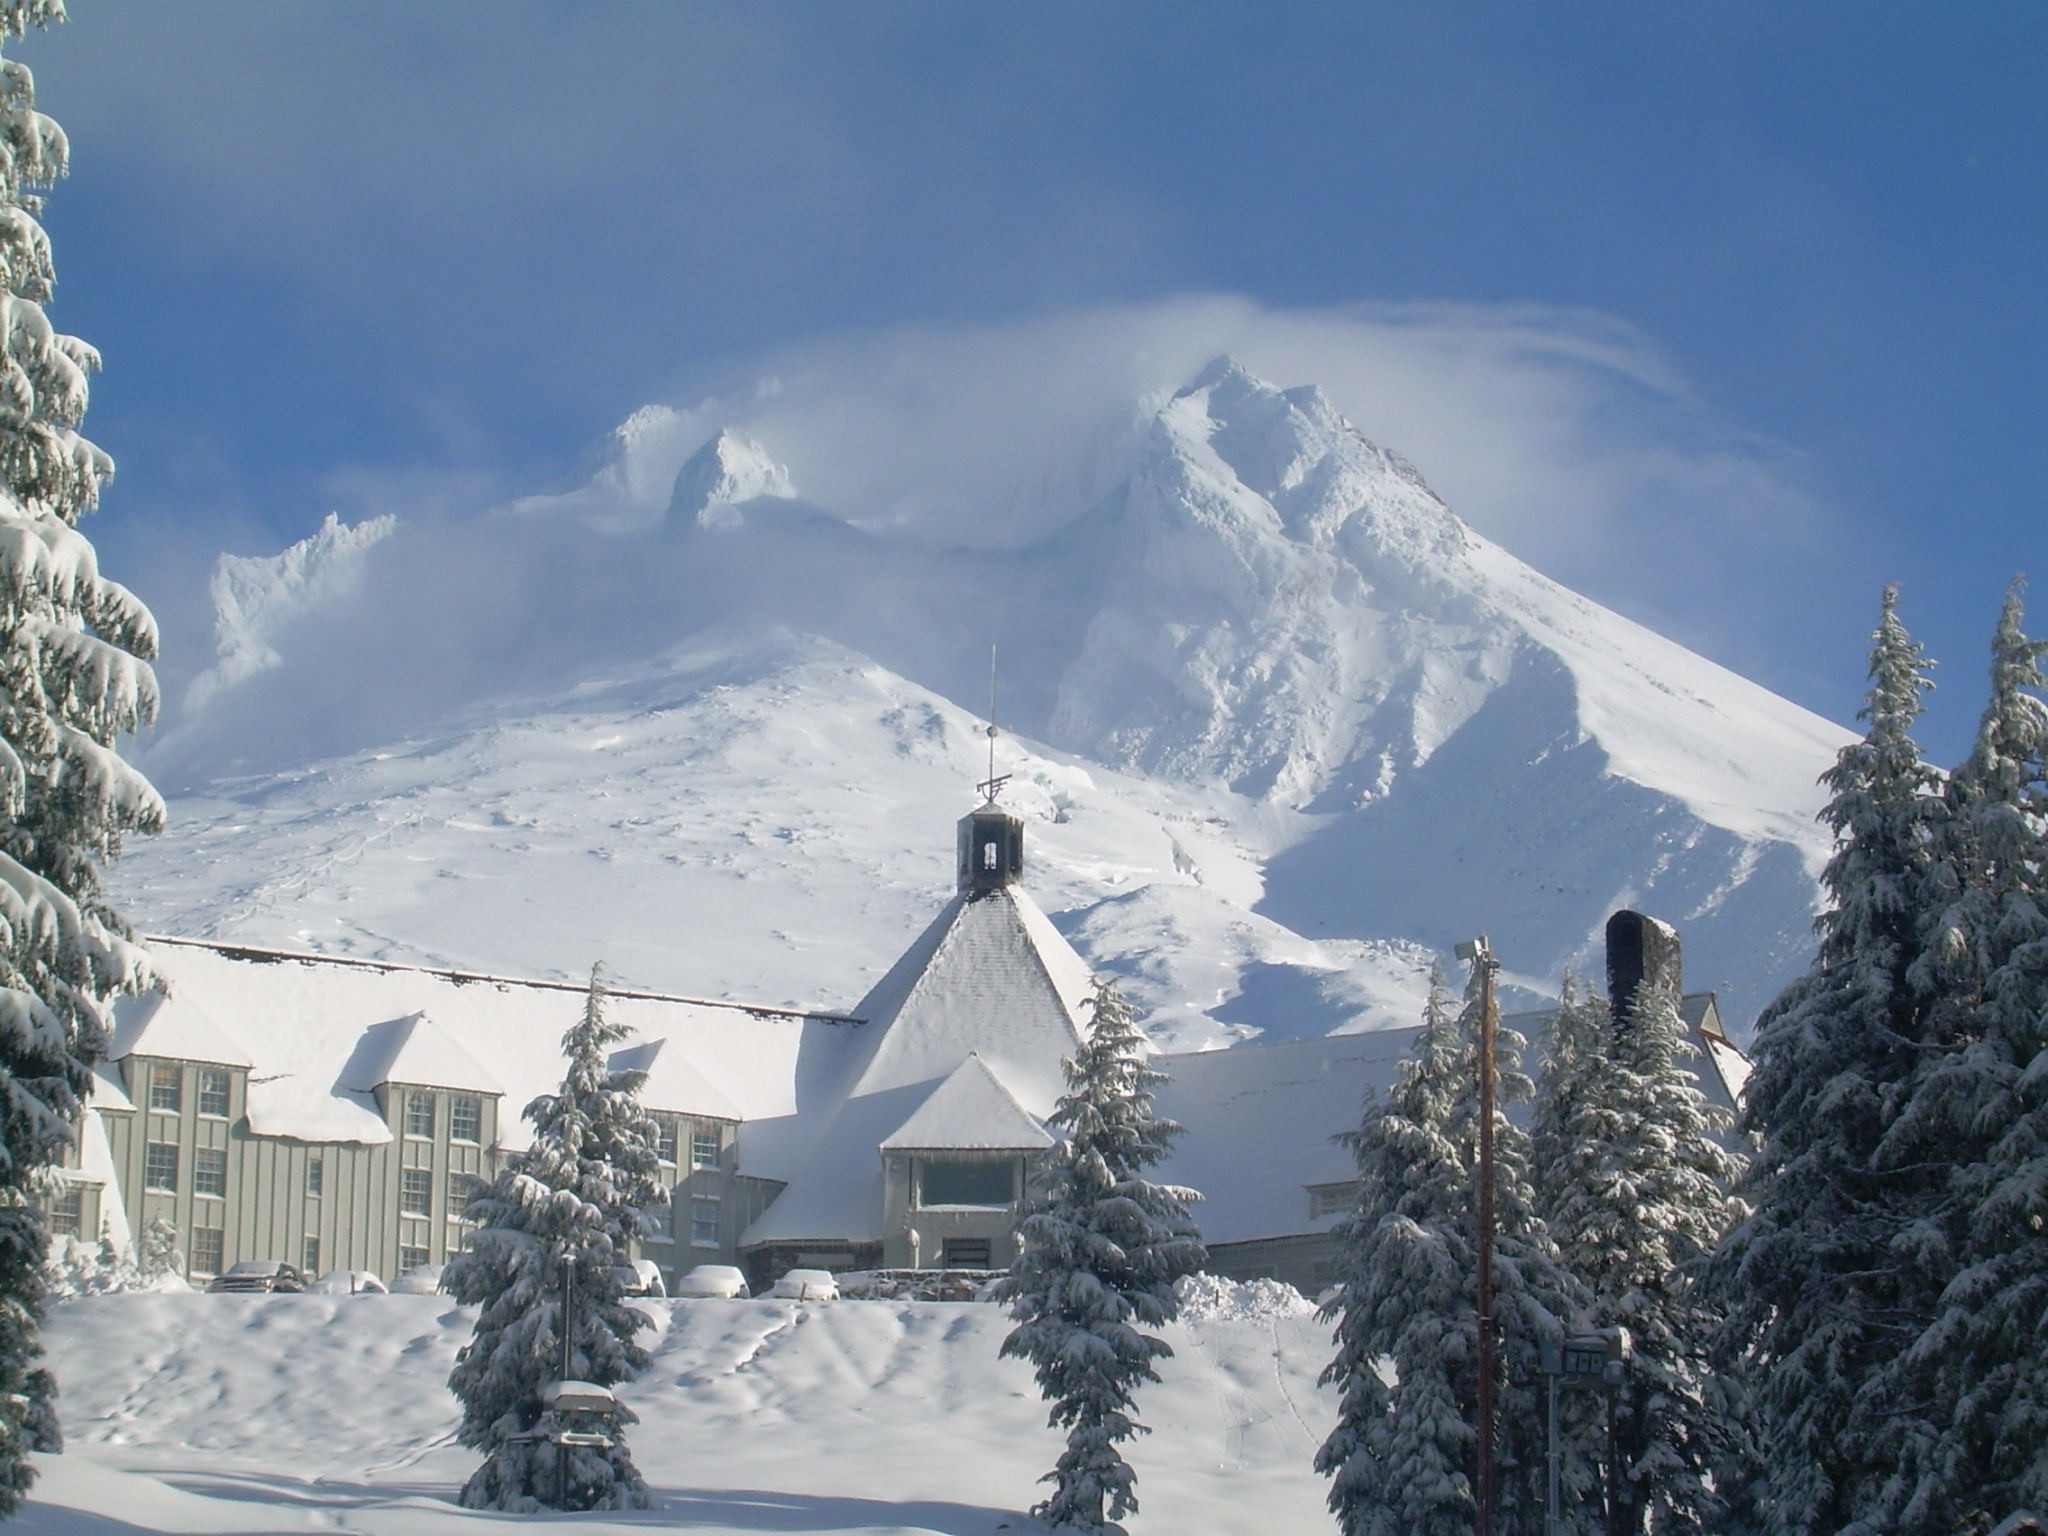 The Timberline Lodge, Mount Hood, Oregon (USA) – Film The Shining (1980)